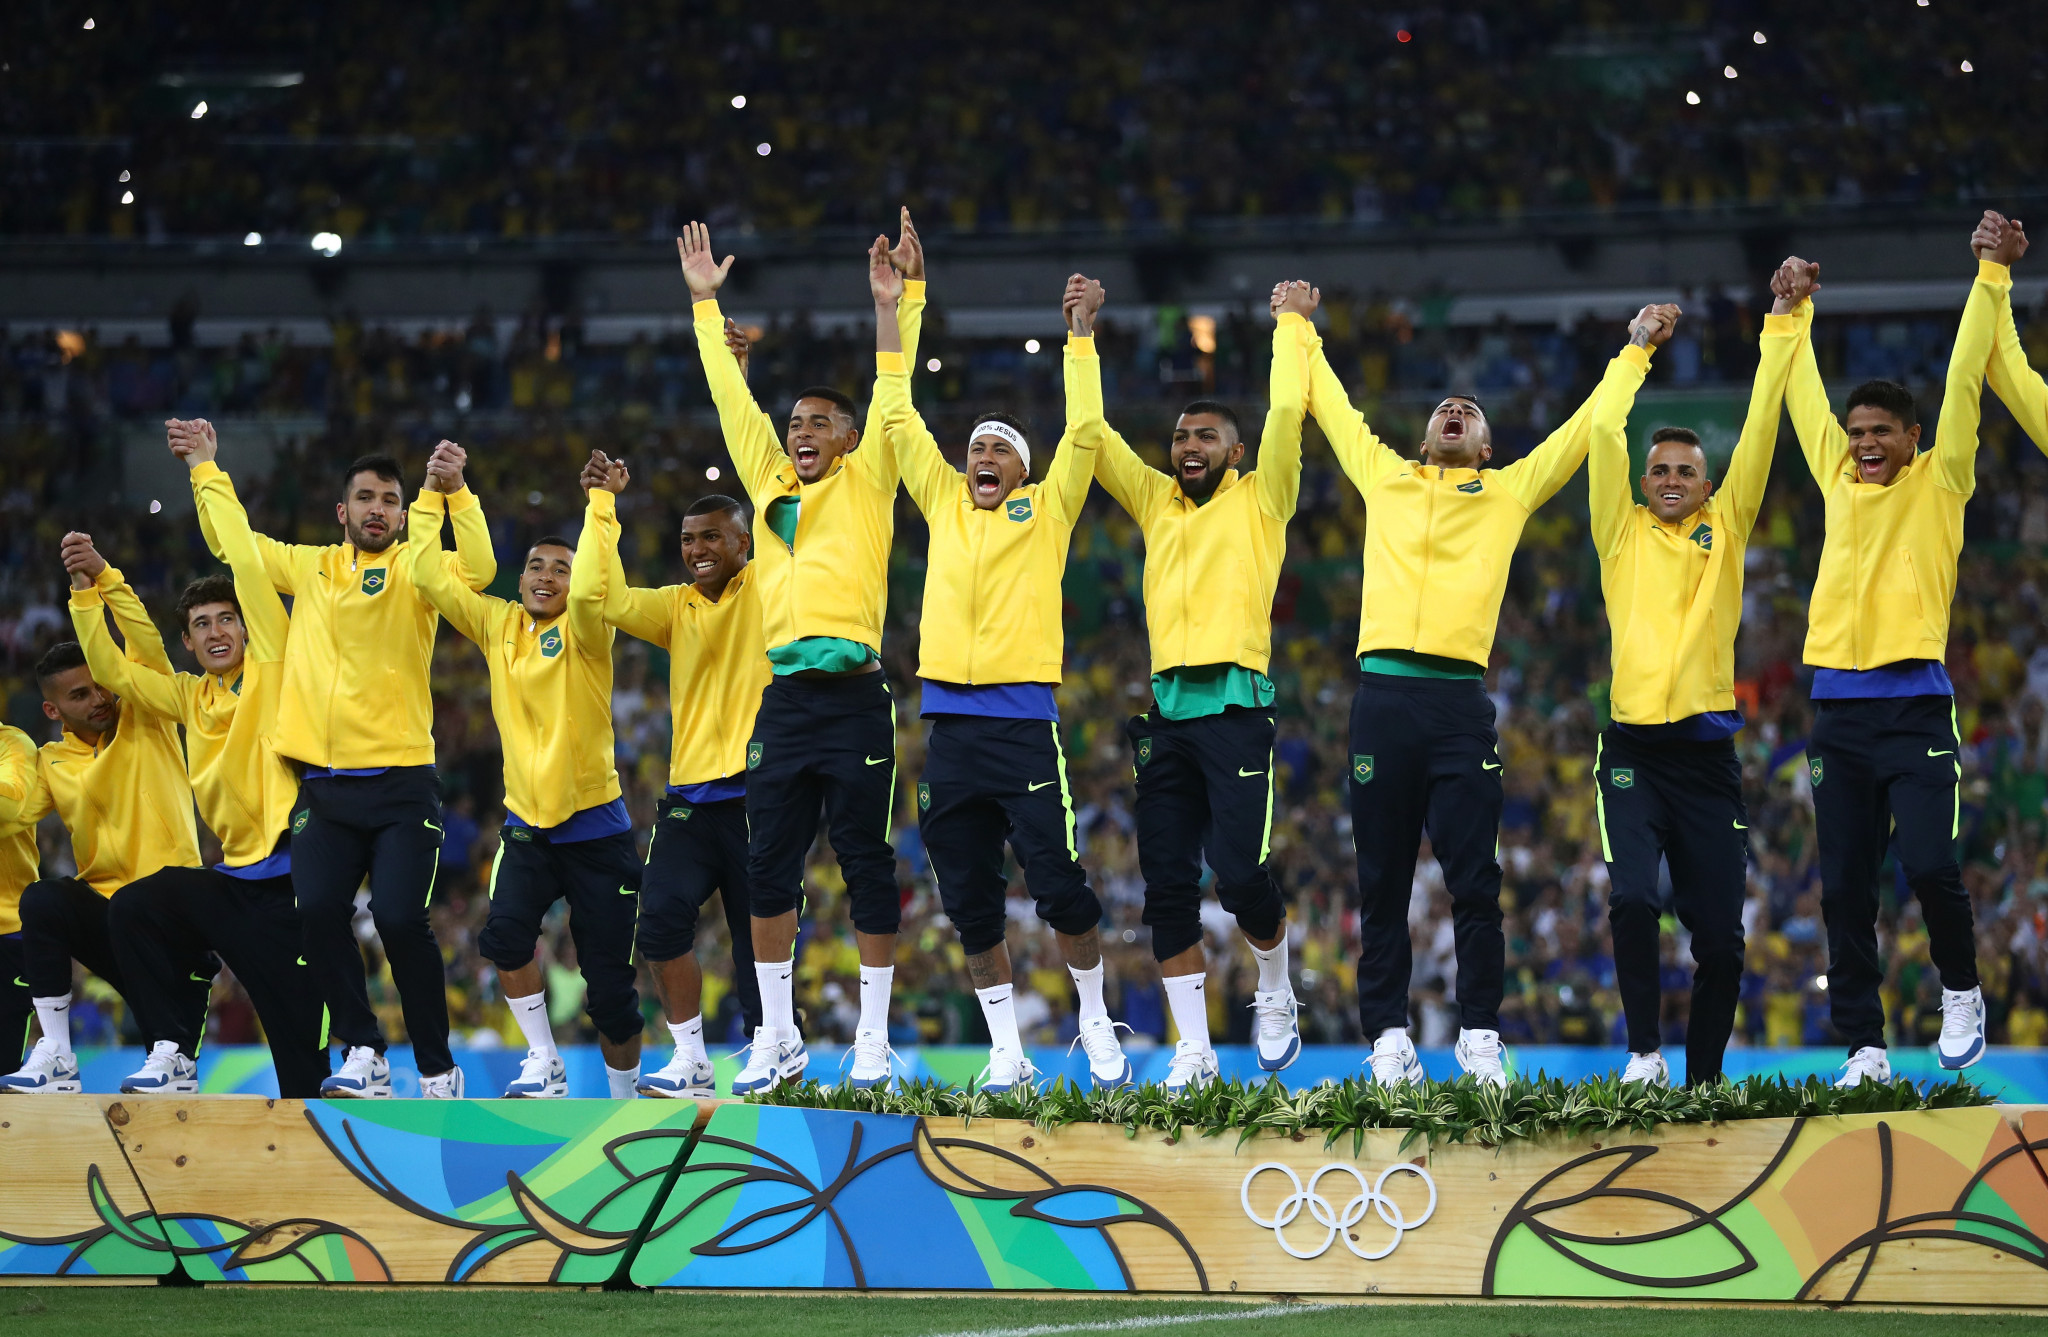 Brazil will begin their defence of their Olympic crown against Rio 2016 silver medallists Germany ©Getty Images